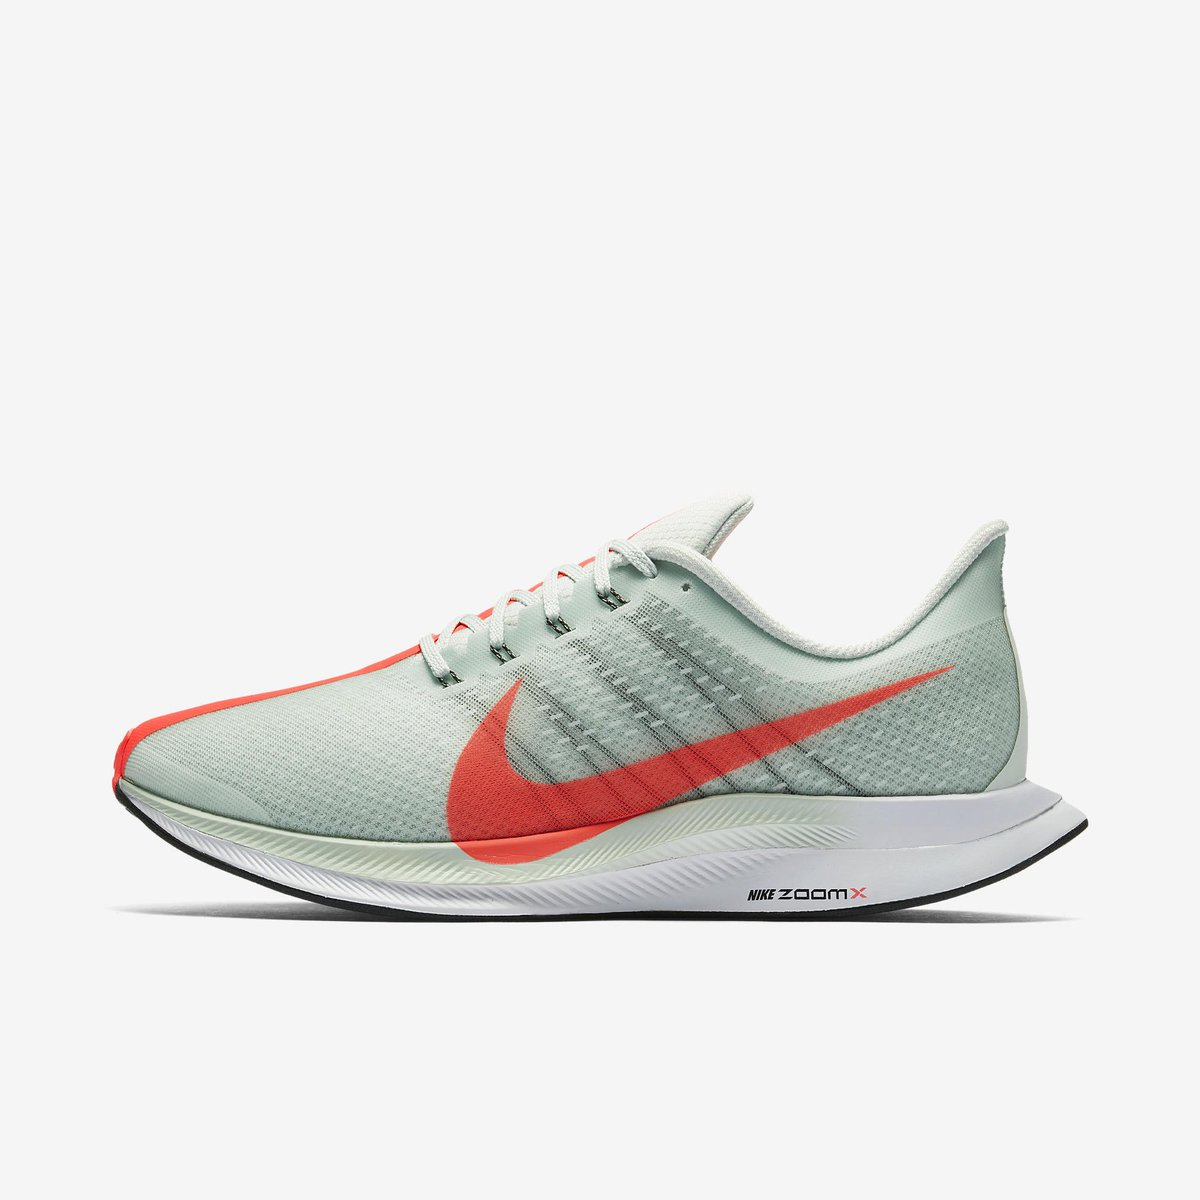 d8d03c812662 Under retail on  FinishLine. Nike Zoom Pegasus Turbo. Retail  180. Now  144  shipped. Use code CYBER20 in cart. —  http   bit.ly 2KqsaBc  pic.twitter.com  ...